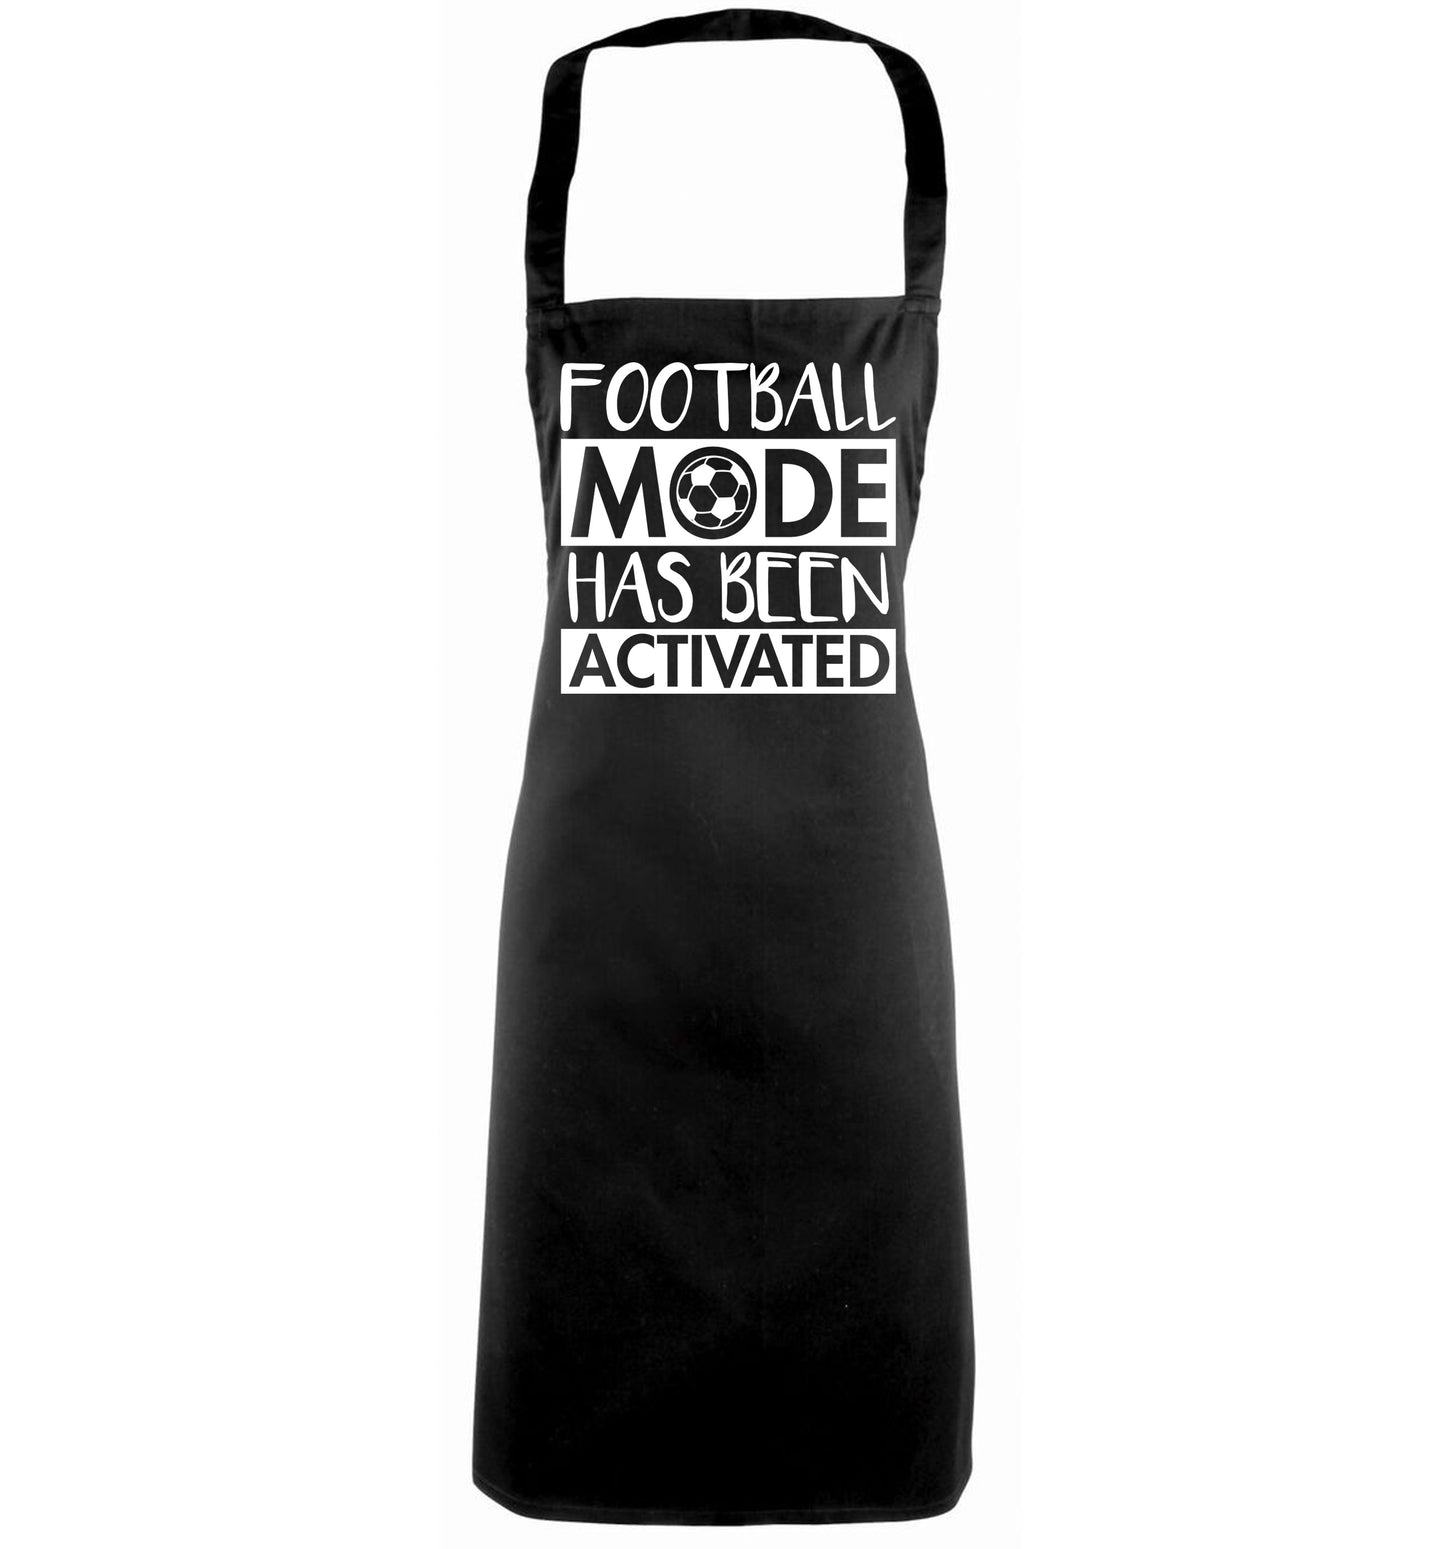 Football mode has been activated black apron